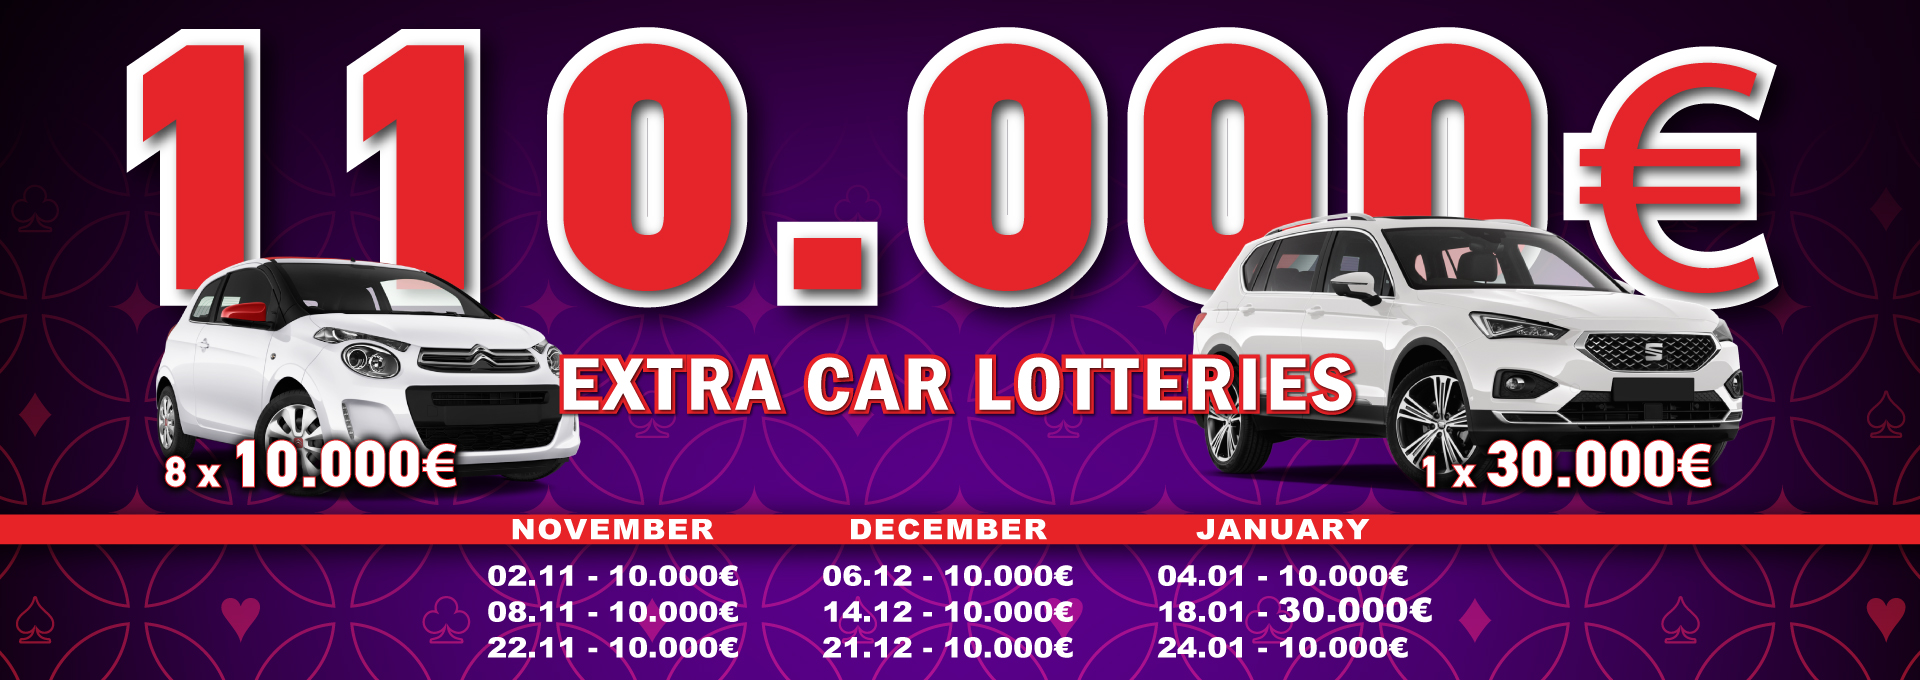 Extra Lotteries November